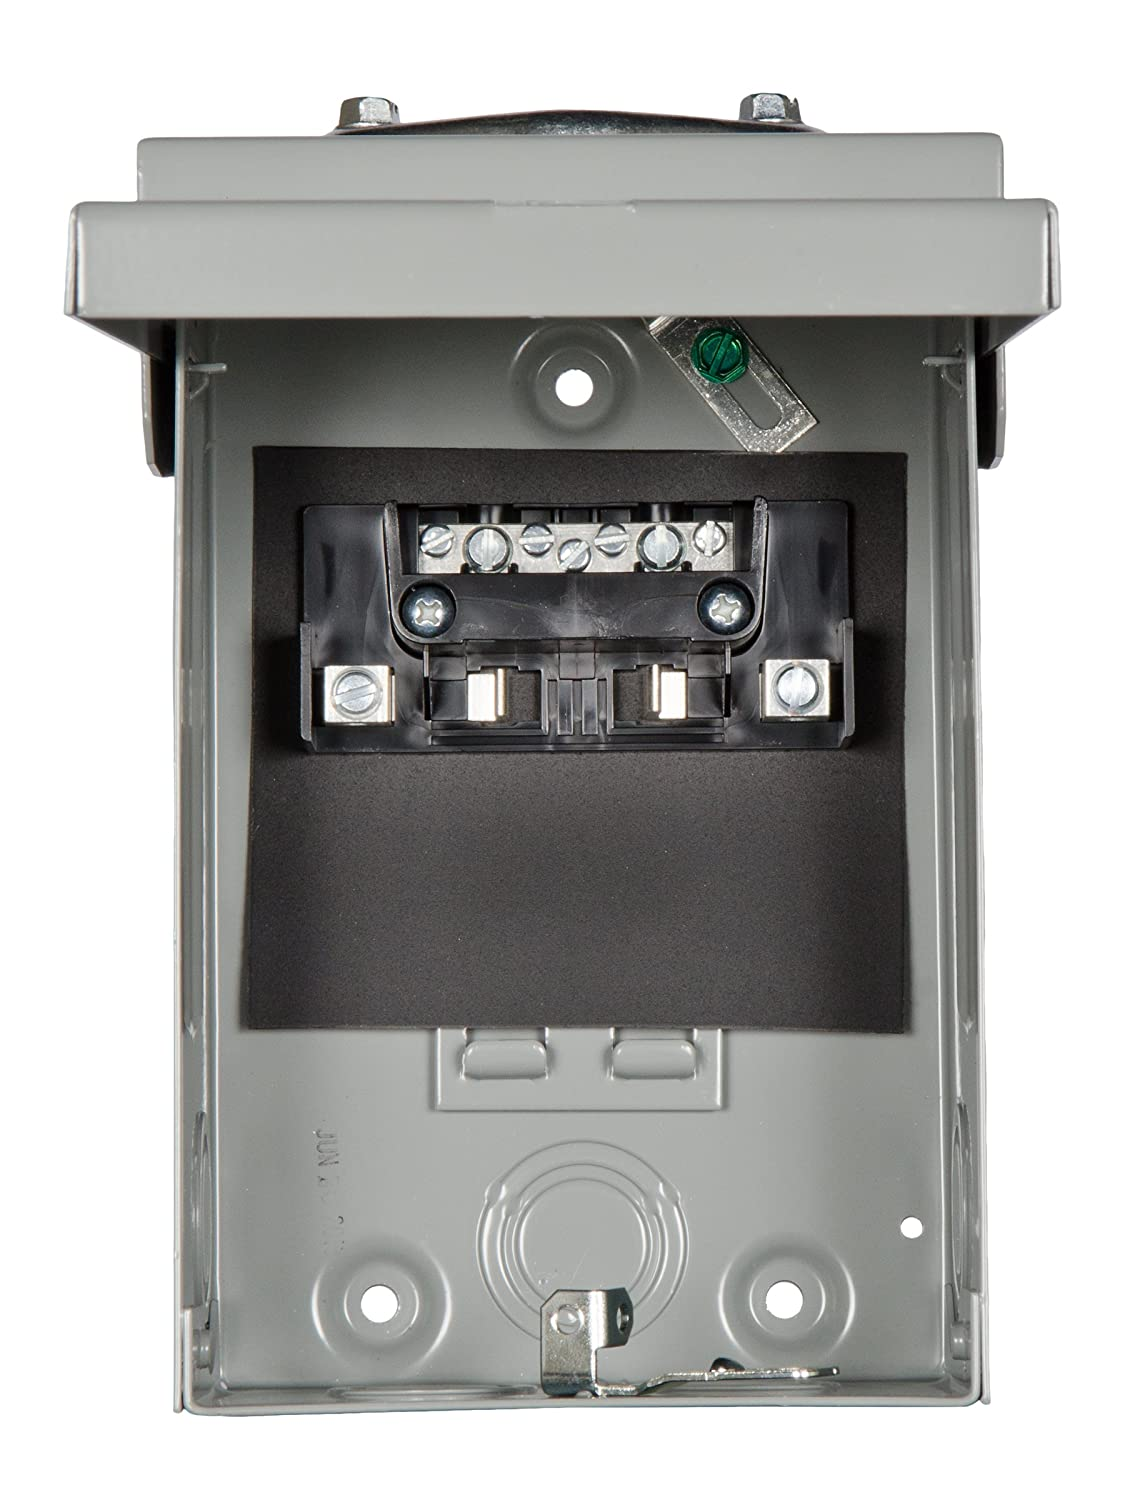 81b6KXqgMDL._SL1500_ circuit breaker panels amazon com electrical breakers, load Fuse Box to Breaker Box at edmiracle.co